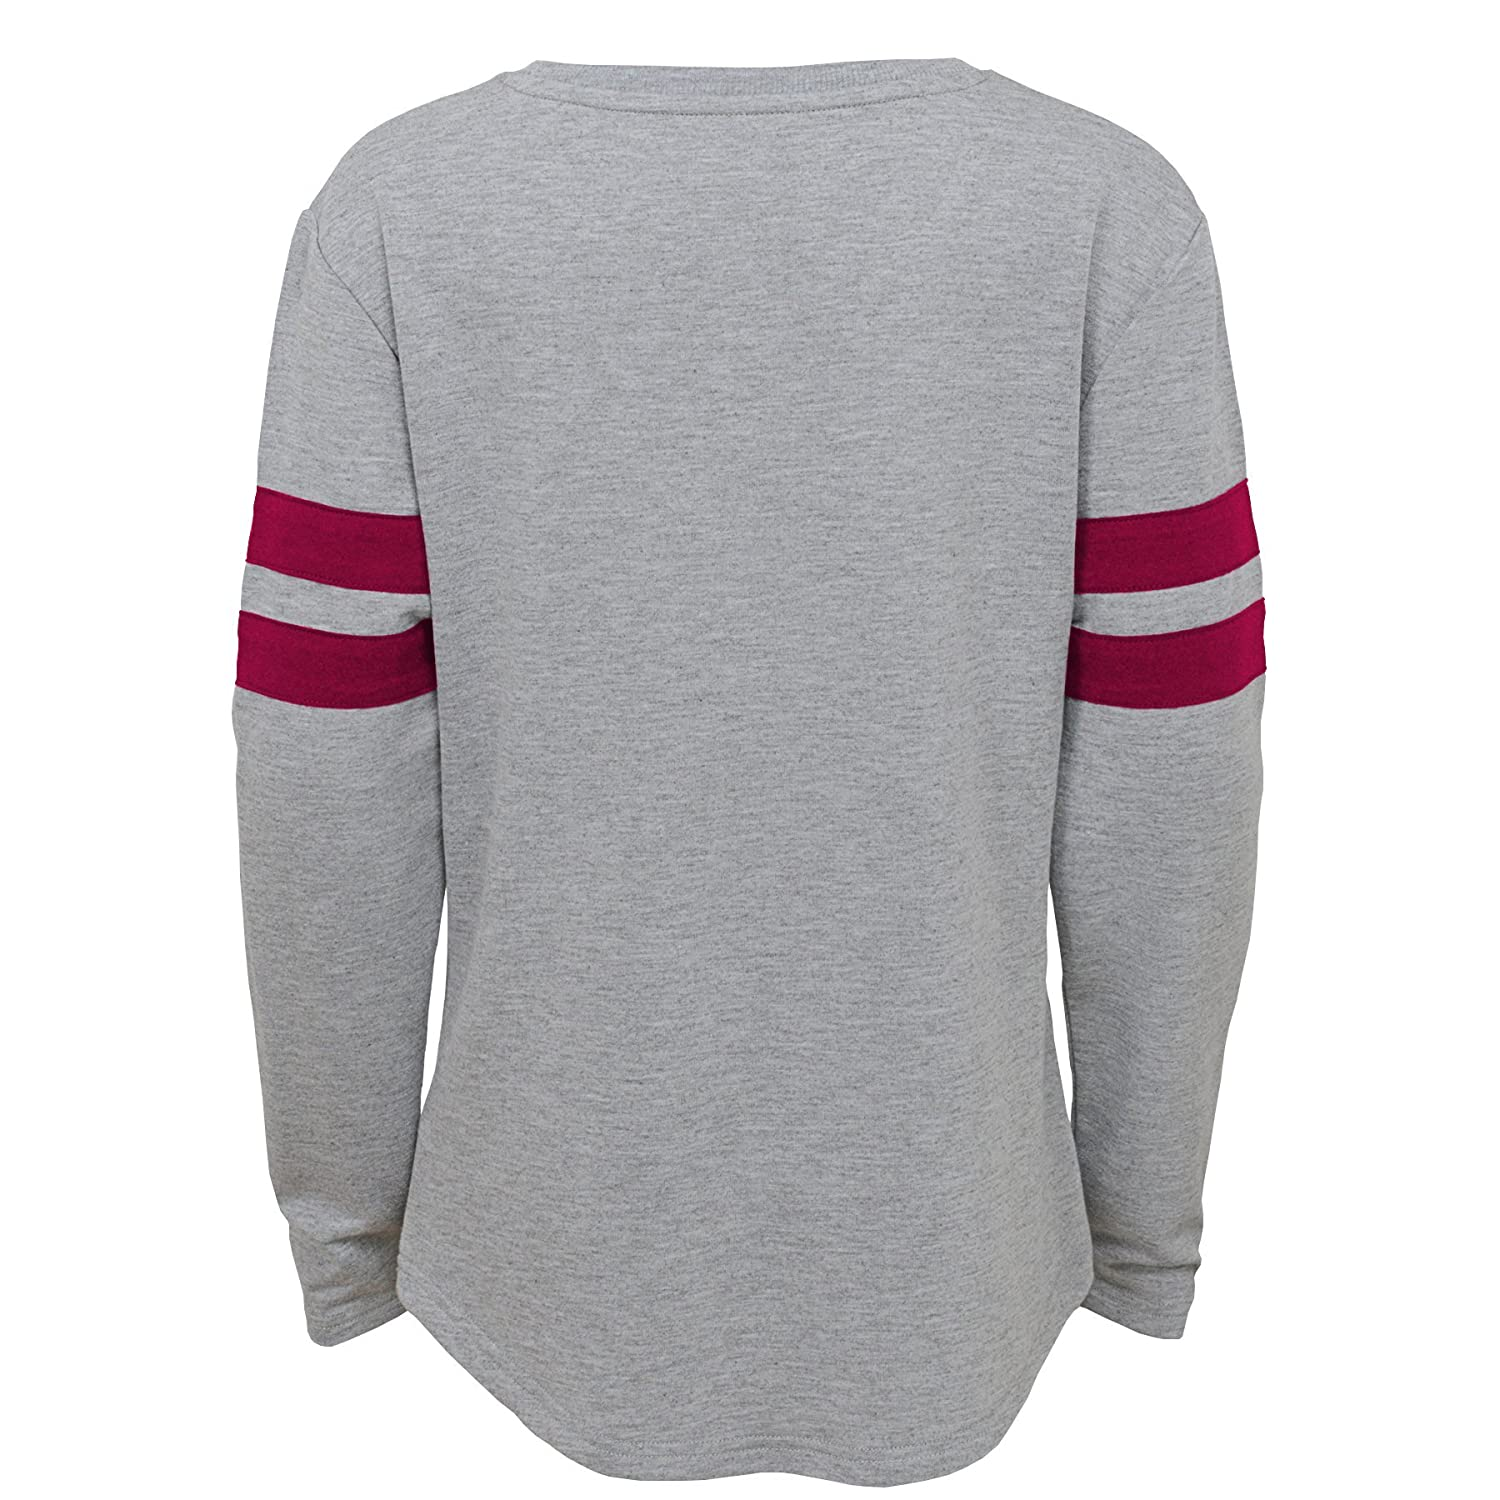 Heather Grey Outerstuff NCAA Florida State Seminoles Youth Girls Field Armor Dolman Sleeve Top 14 Youth Girls Large